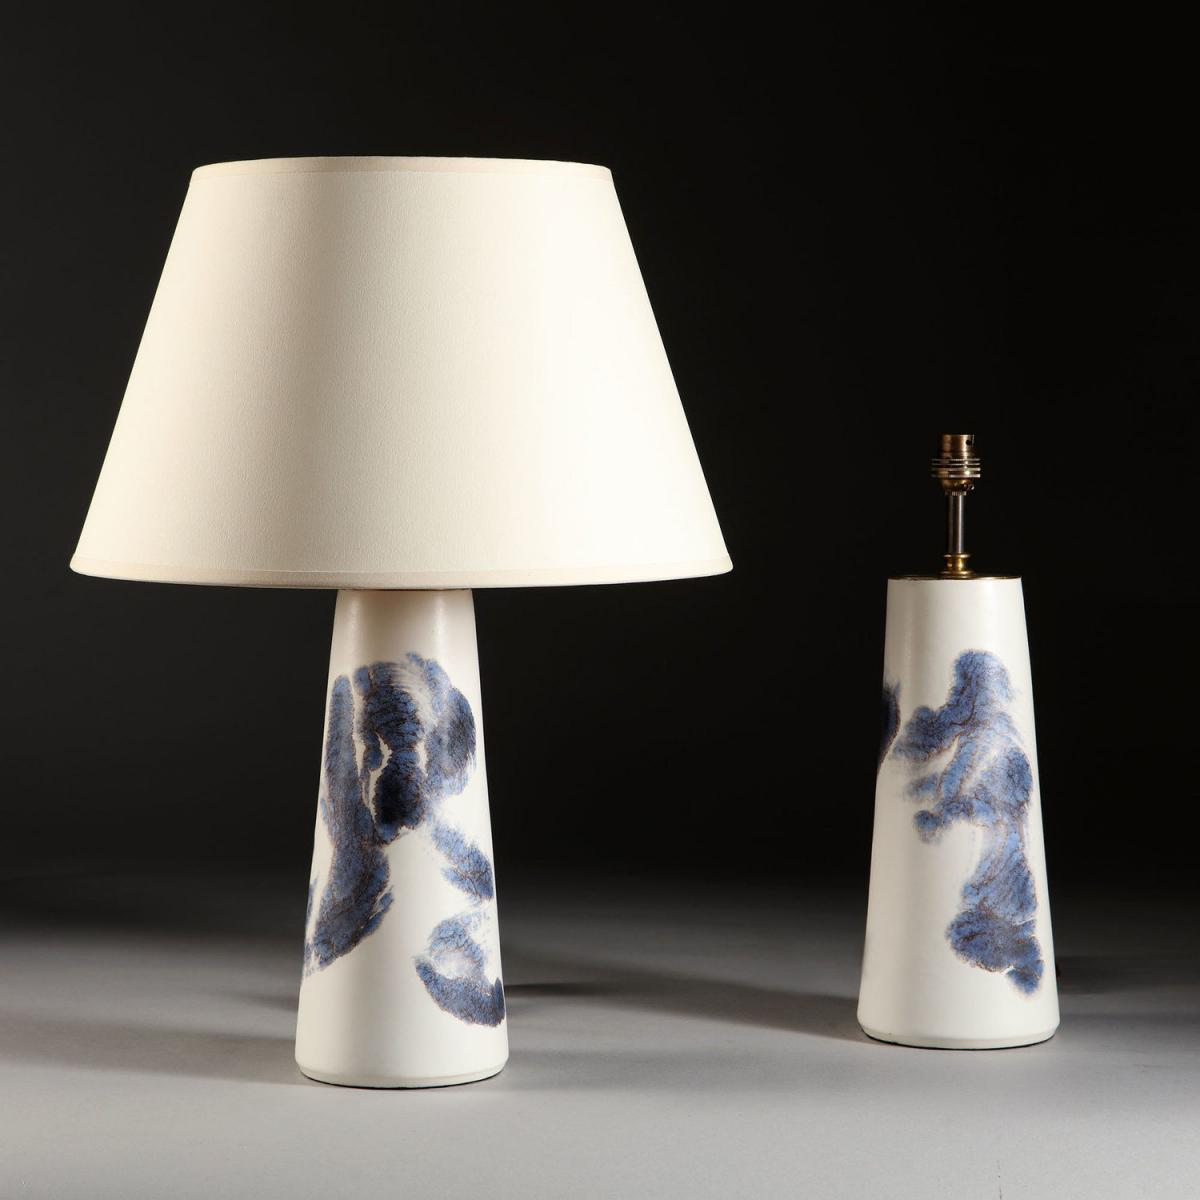 A Pair of Blue and White Art Pottery Lamps